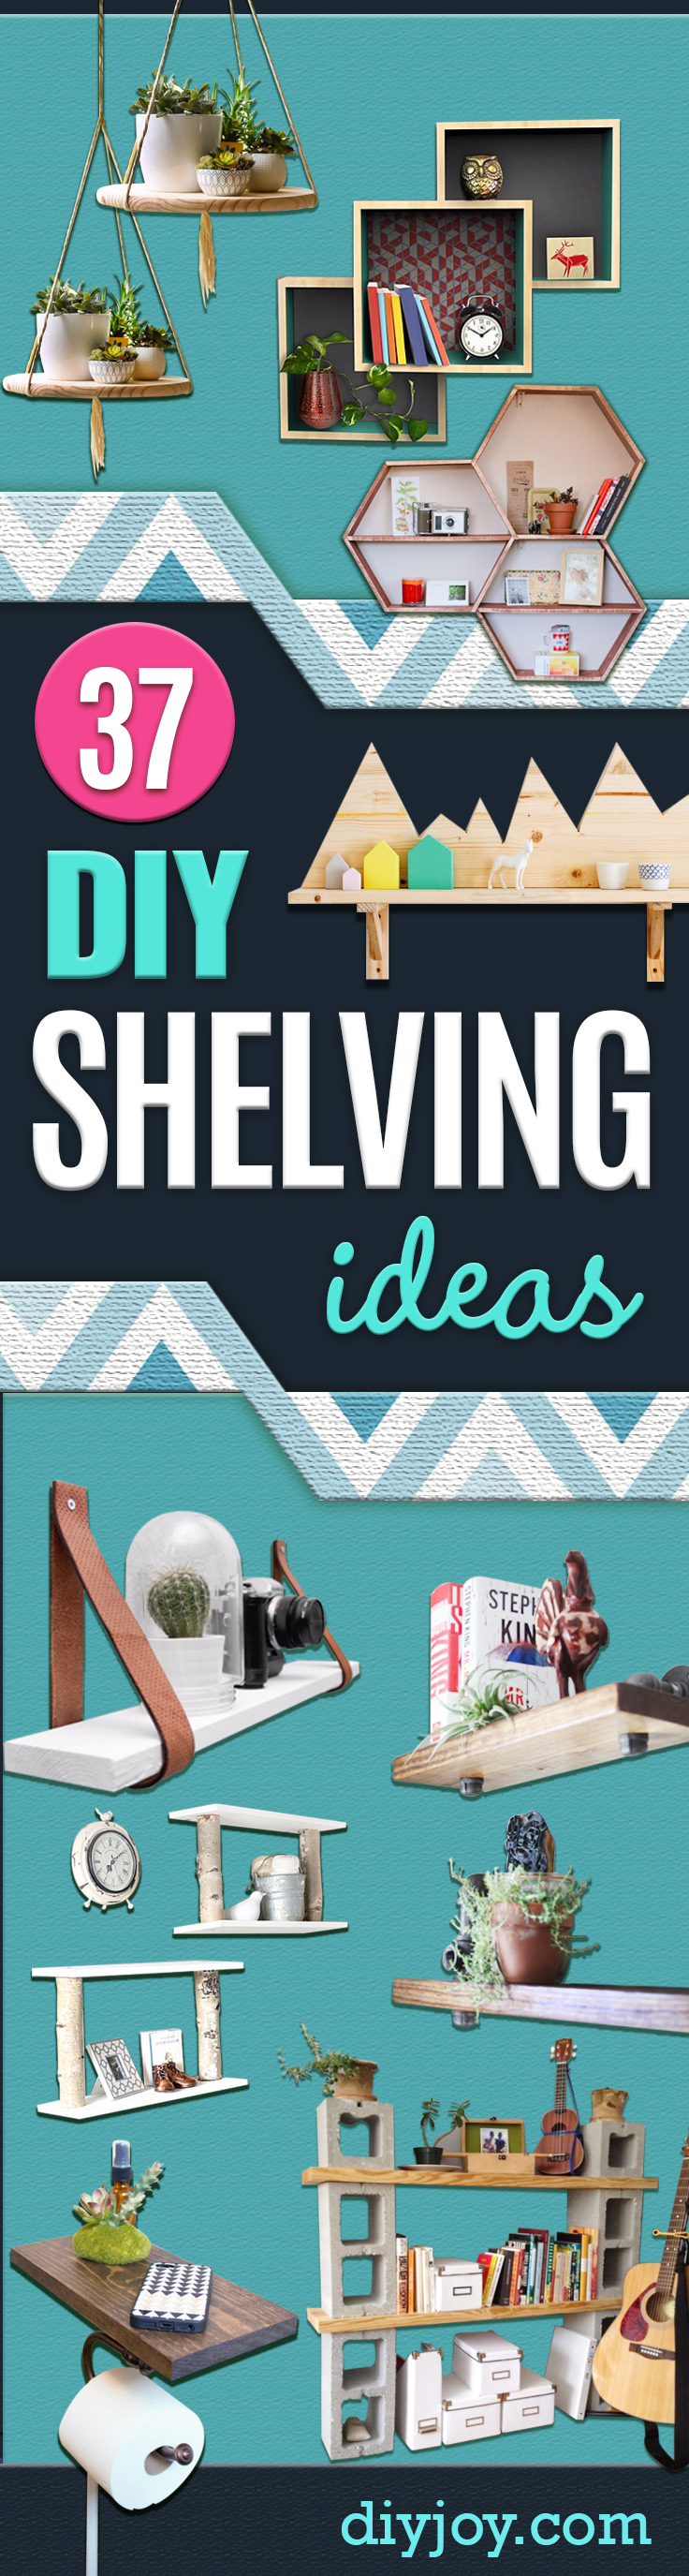 37 brilliantly creative diy shelving ideas diy joy diy shelves and do it yourself shelving ideas easy step by step shelf projects for amipublicfo Images